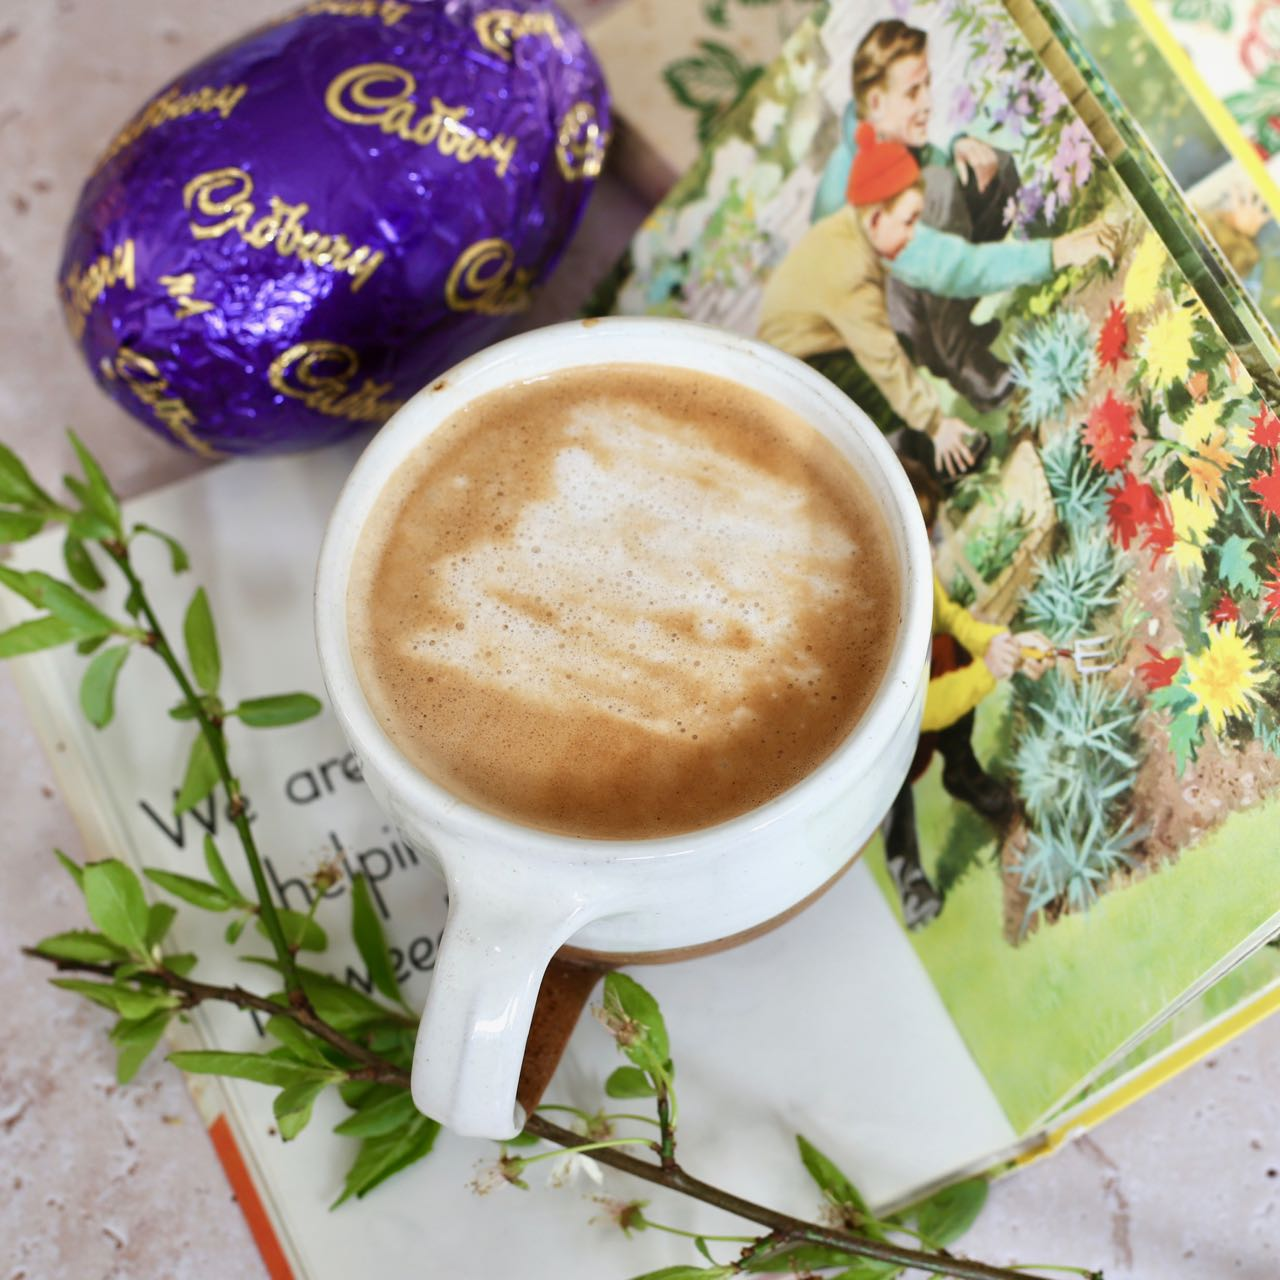 Cup of coffee and an Easter egg